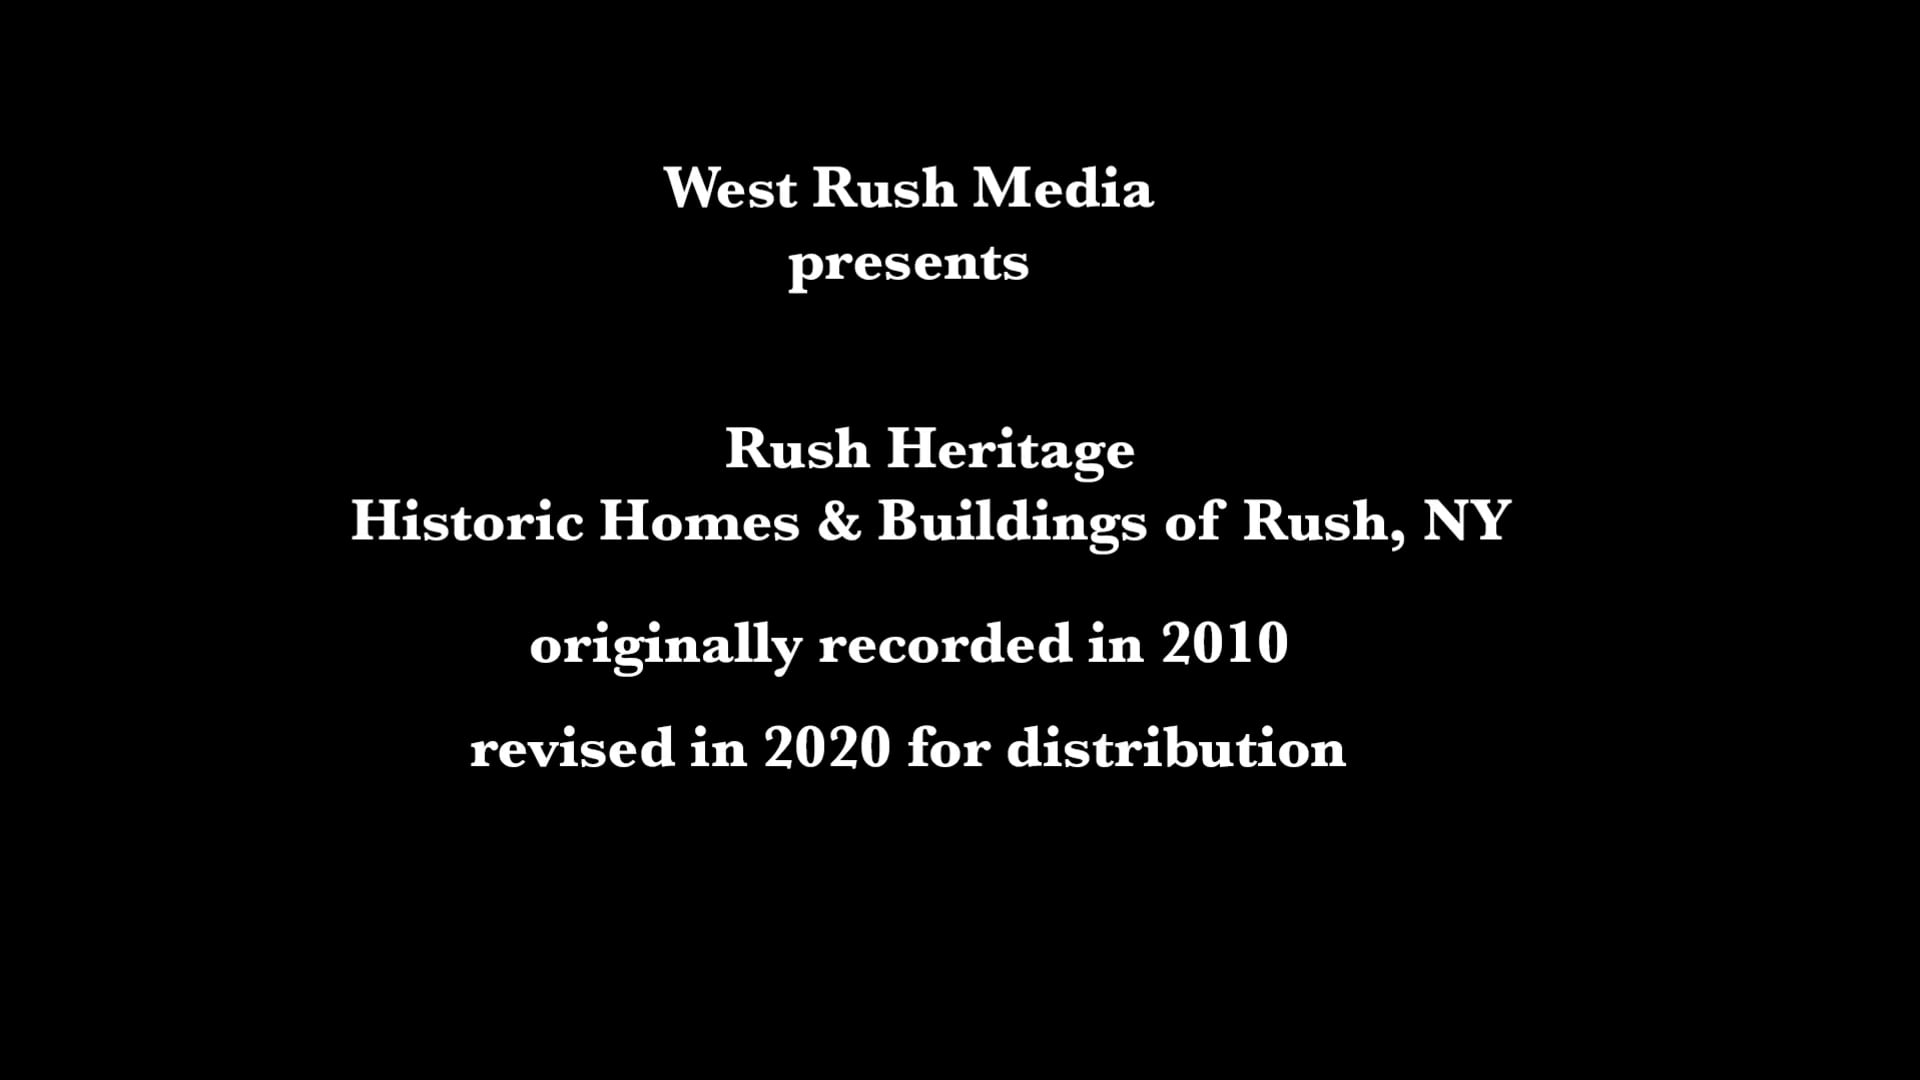 Rush Heritage 2010 revised in 2020